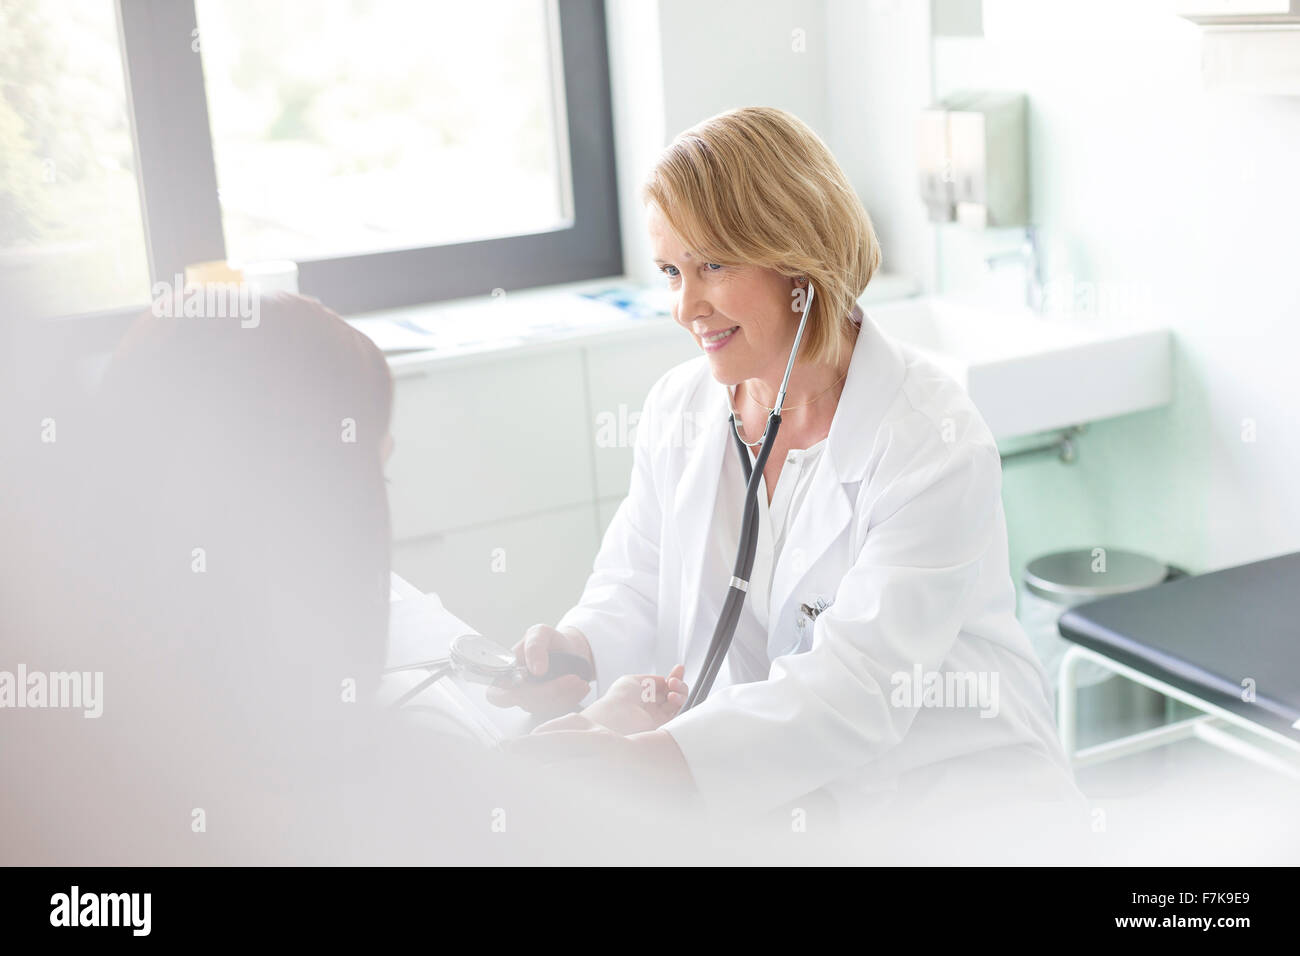 Doctor checking patient's blood pressure in examination room - Stock Image